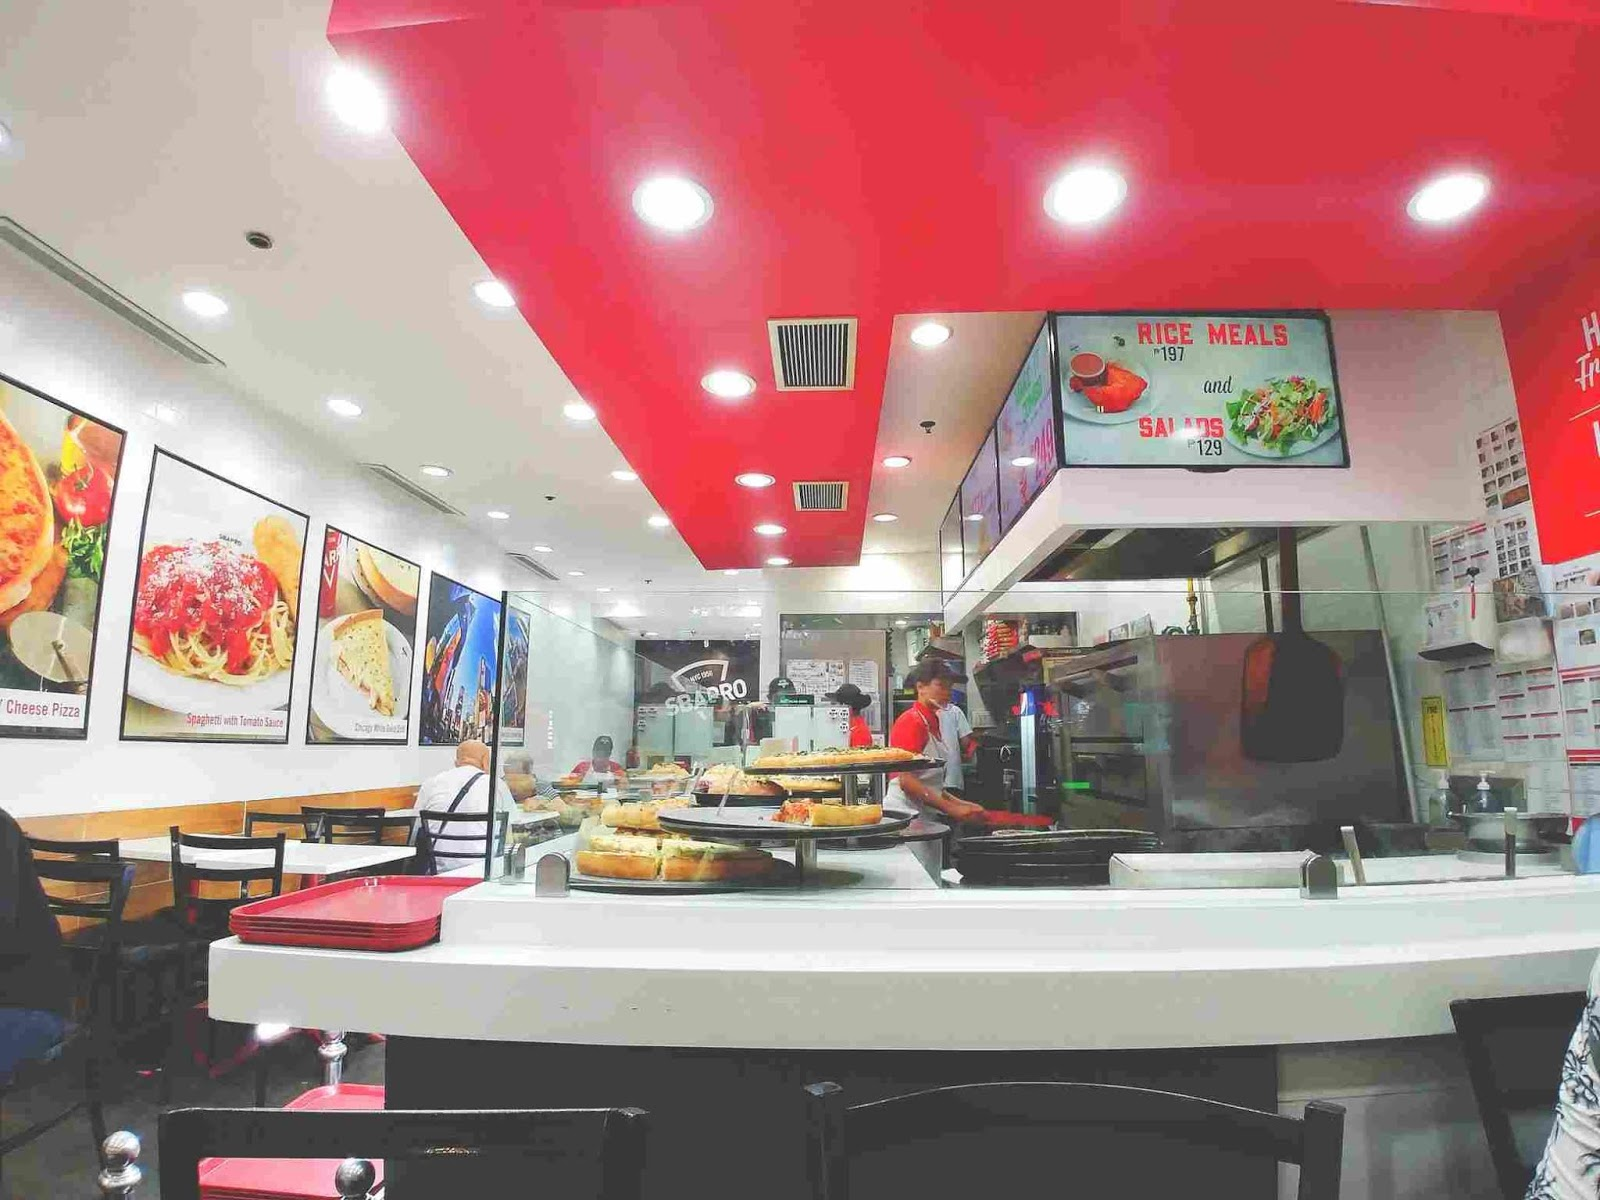 Sbarro Italian cuisine freshly-cooked pizza and pasta